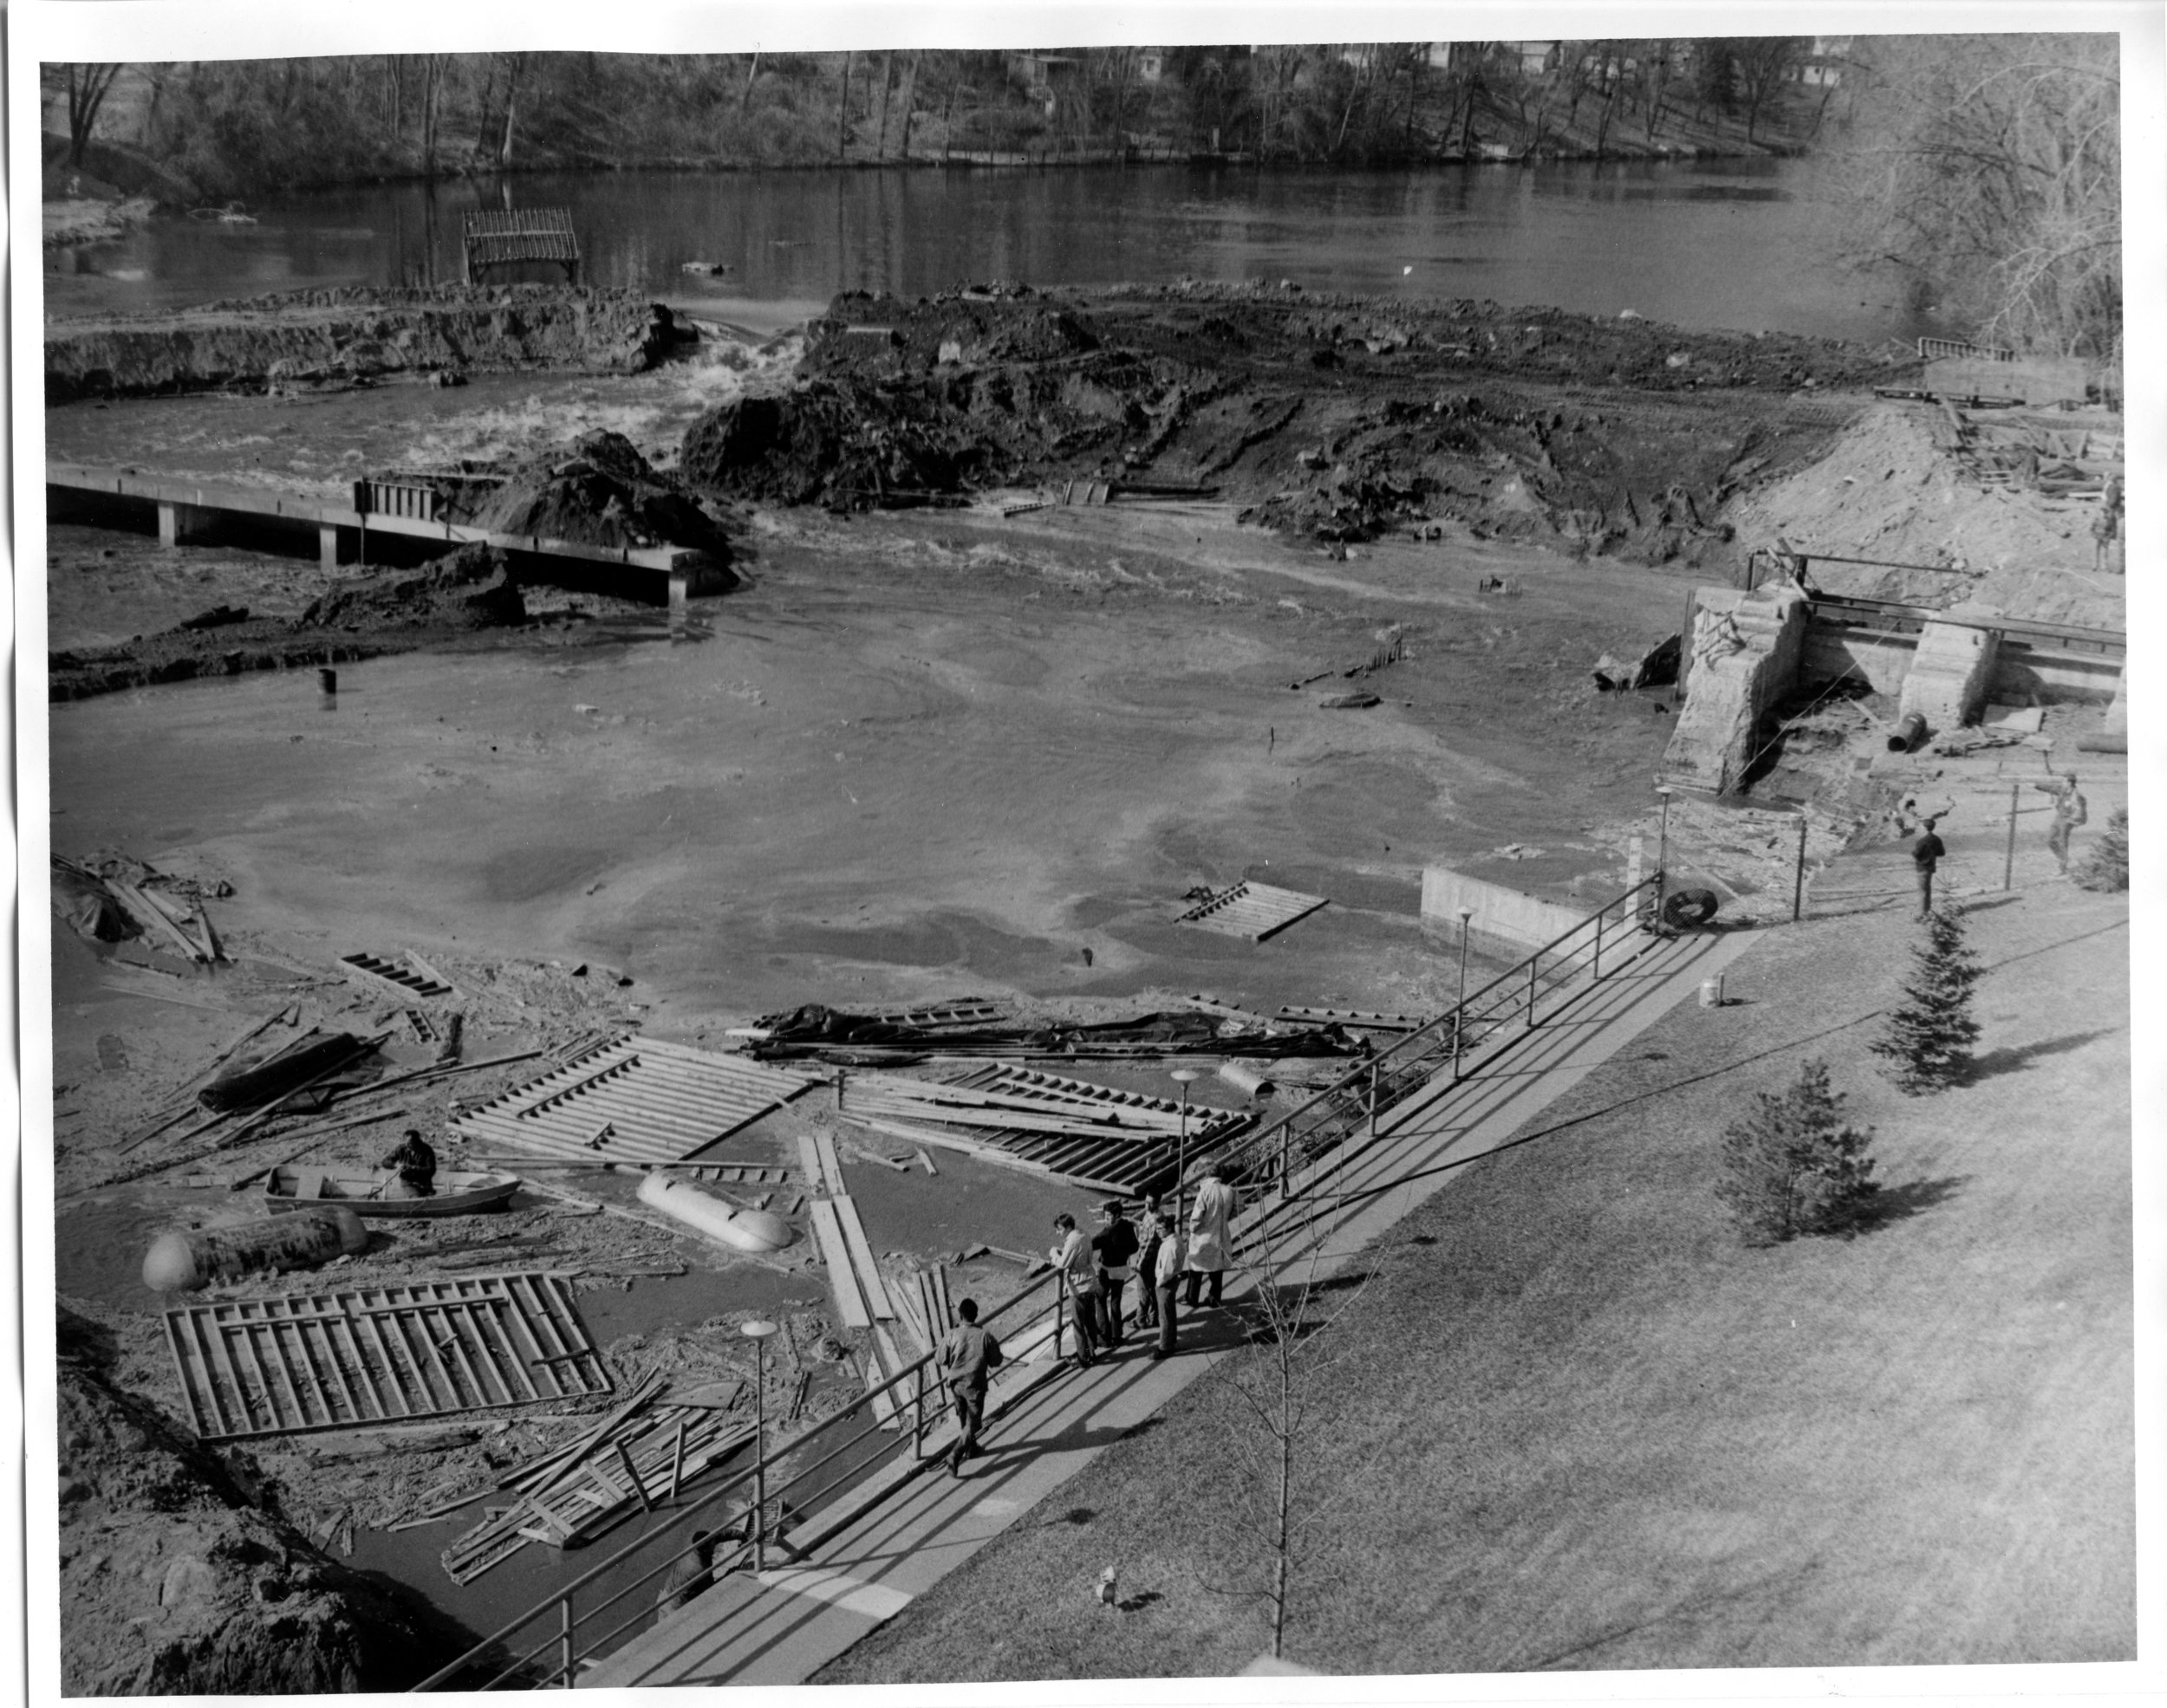 This is one of four photos in the ACHS collection that show the reconstruction of the Rum River Dam in Anoka, probably around 1970. (Object ID 2001.0268.503)